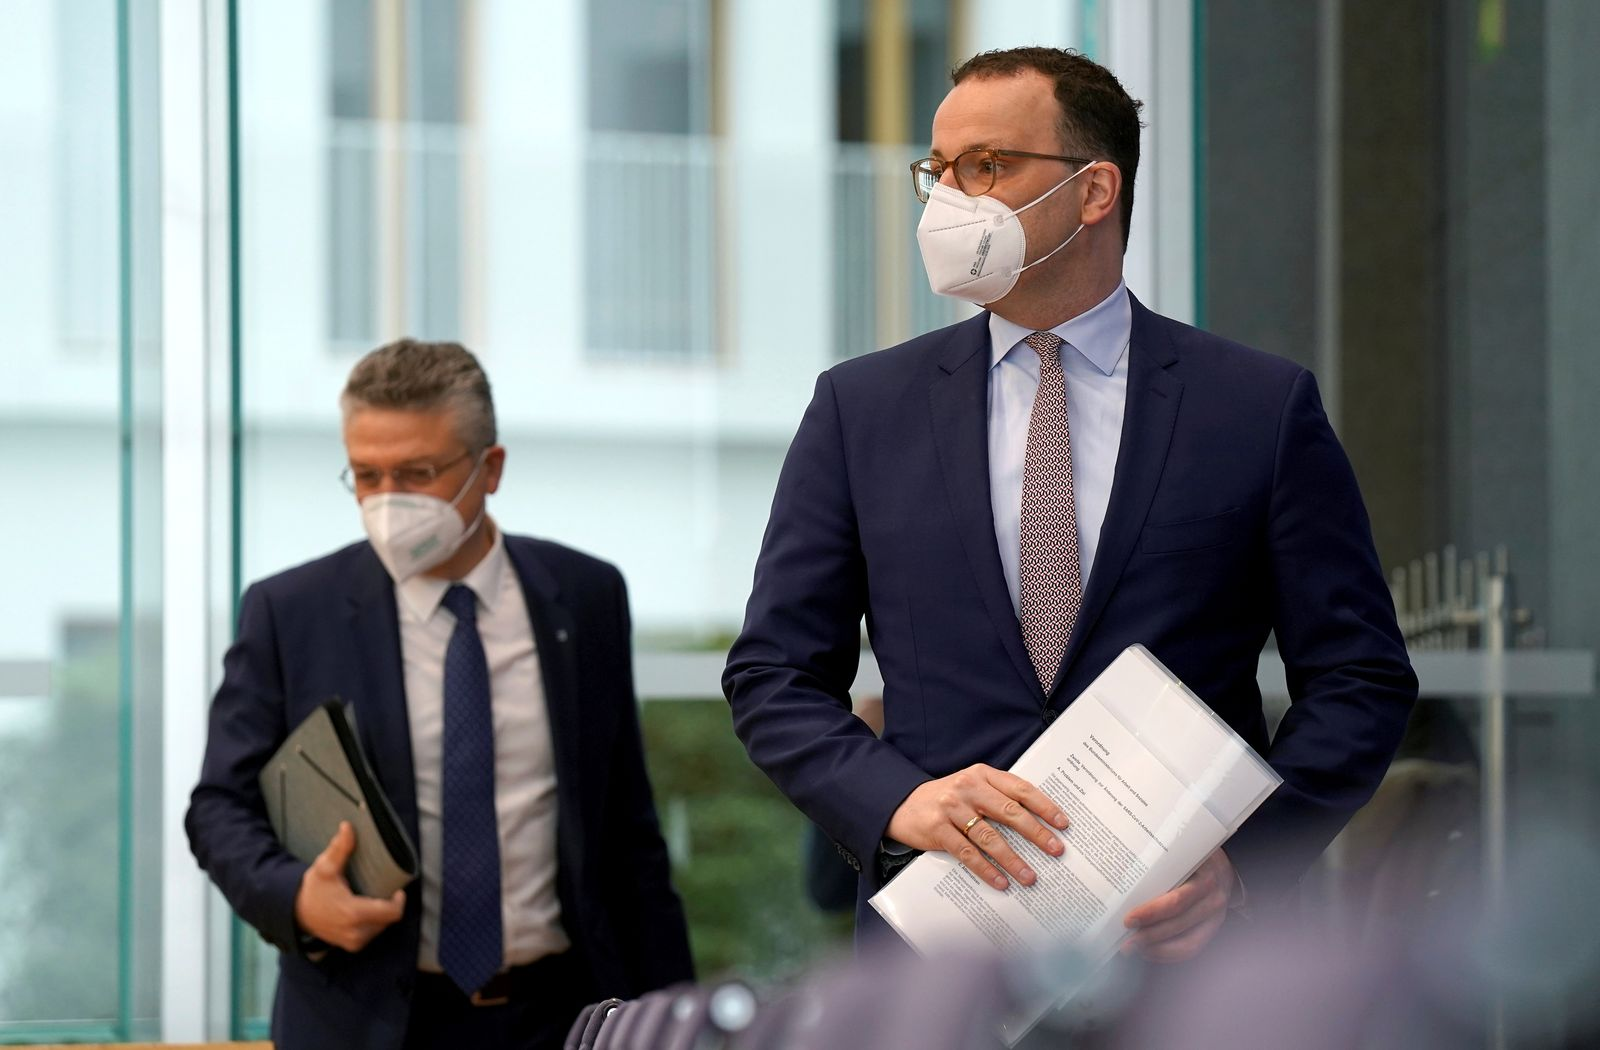 German Health Minister Jens Spahn and Lothar H. Wieler president of the Robert-Koch-Institute German national agency and research institute, responsible for disease control and prevention, arrive for a press conference in Berlin